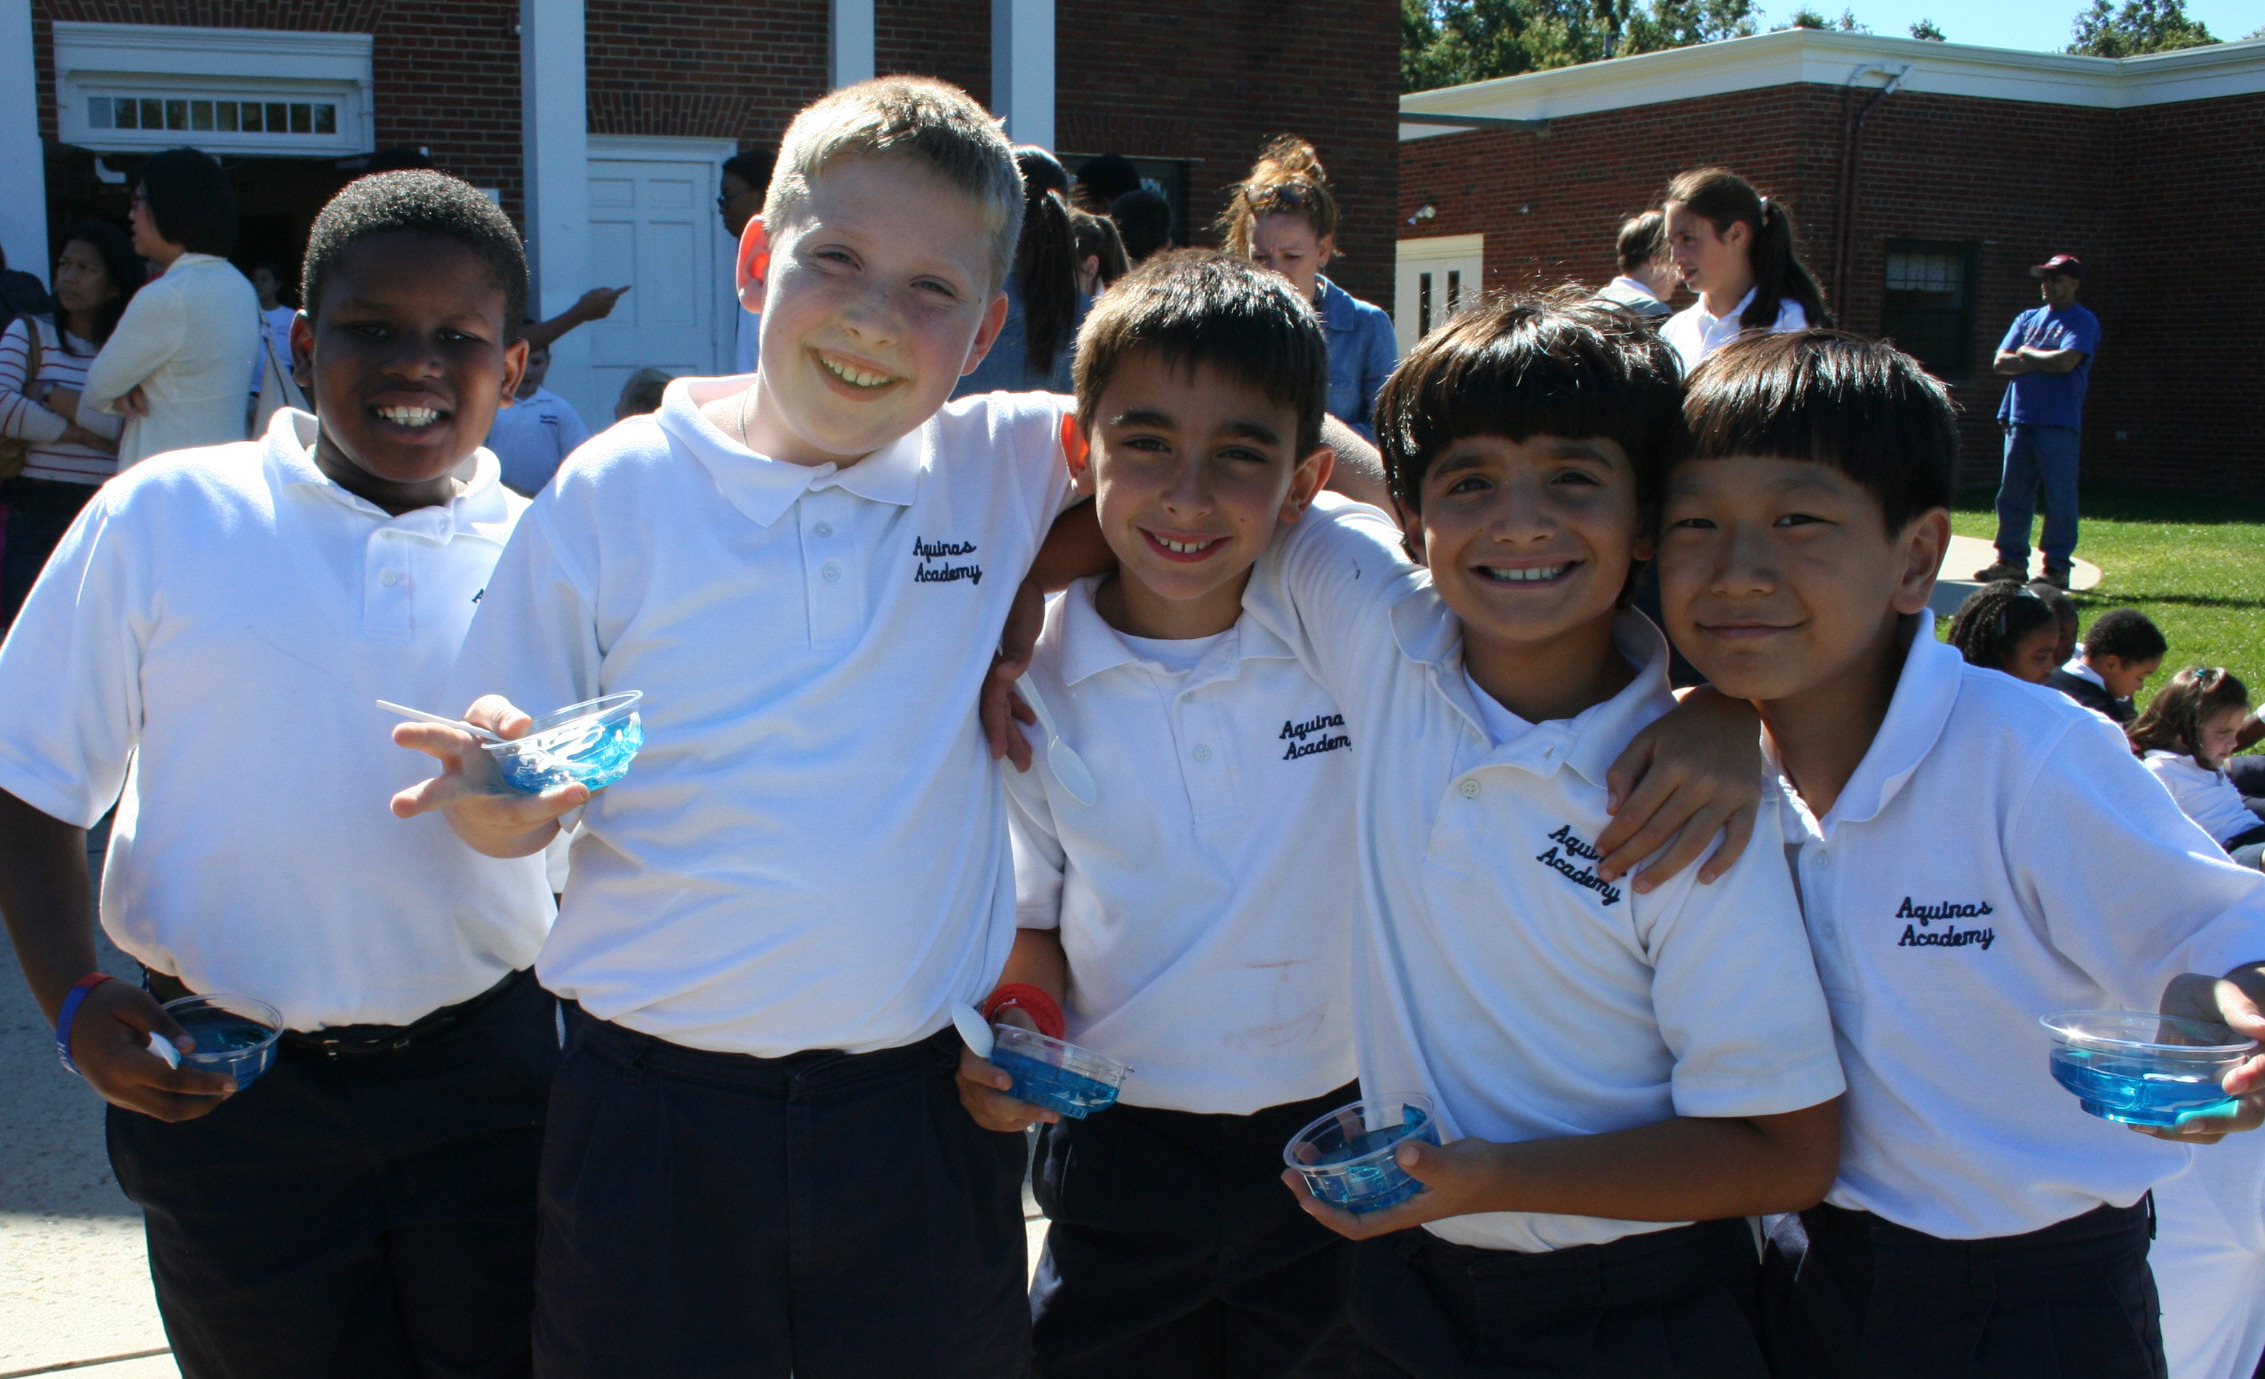 Aquinas Academy Named a 2013 National Blue Ribbon School of Excellence